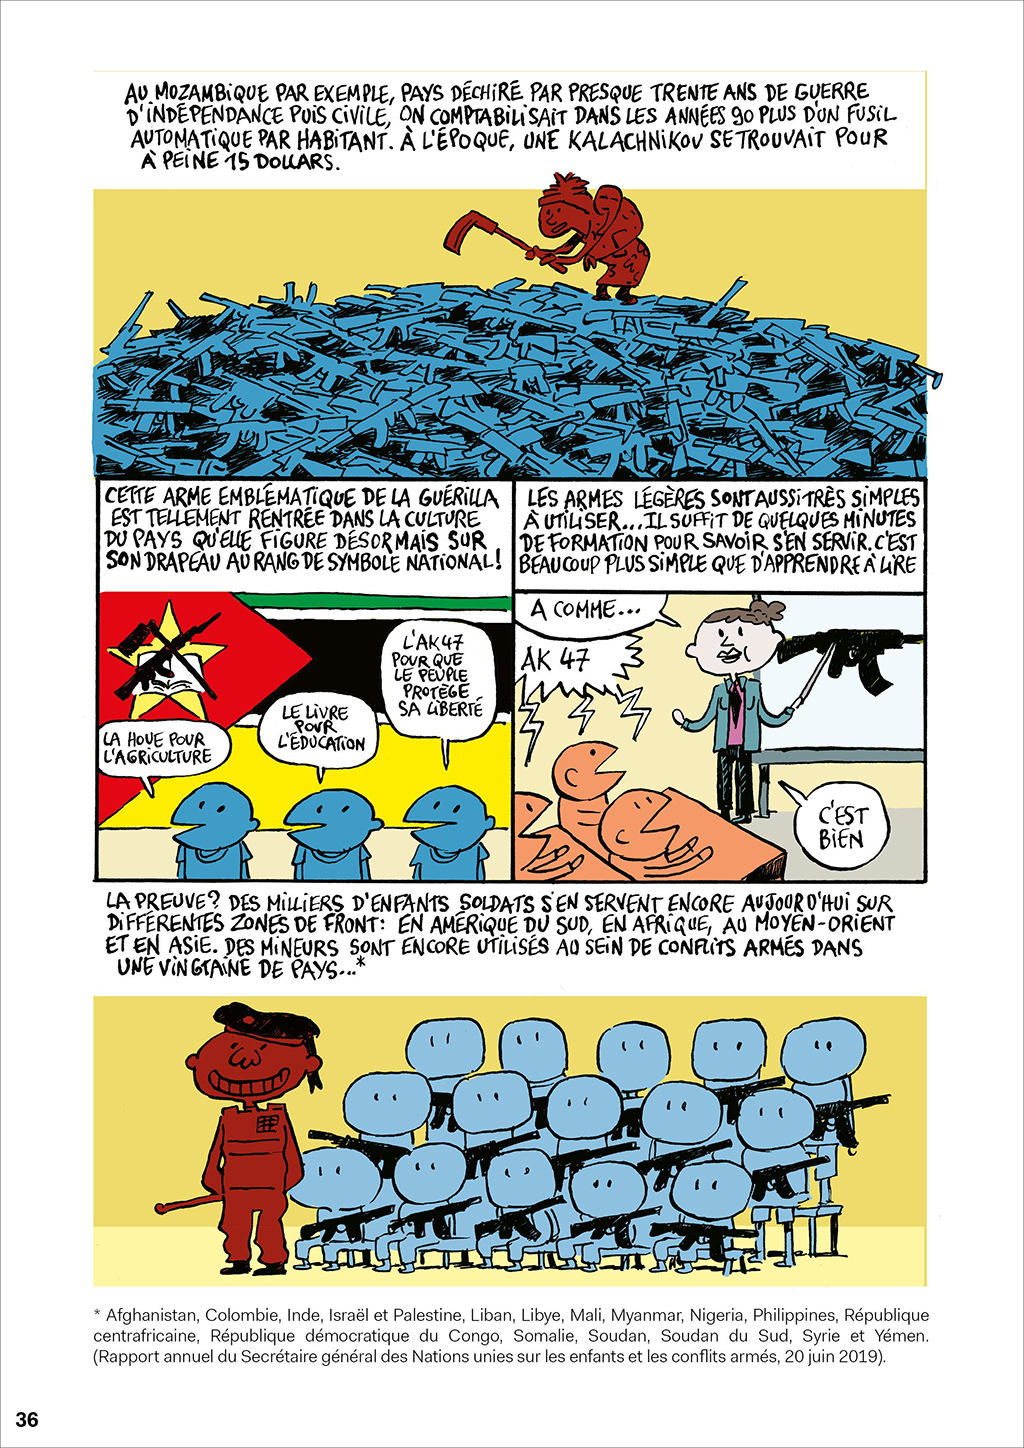 A page from the comic book.